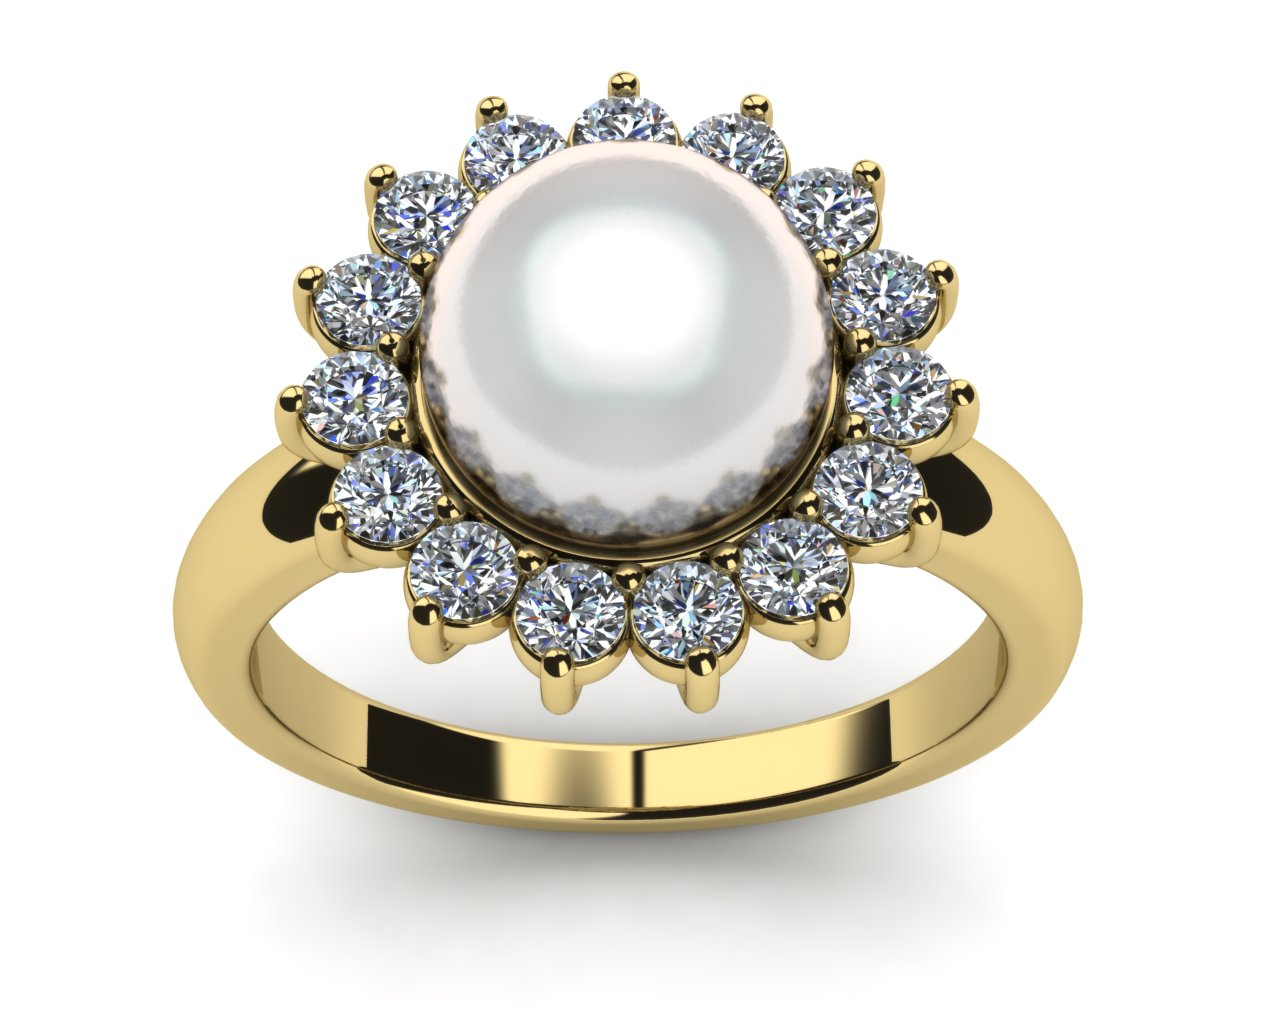 rings gold belle epoque poque diamond ring pearl rive img product platinum gauche engagement natural